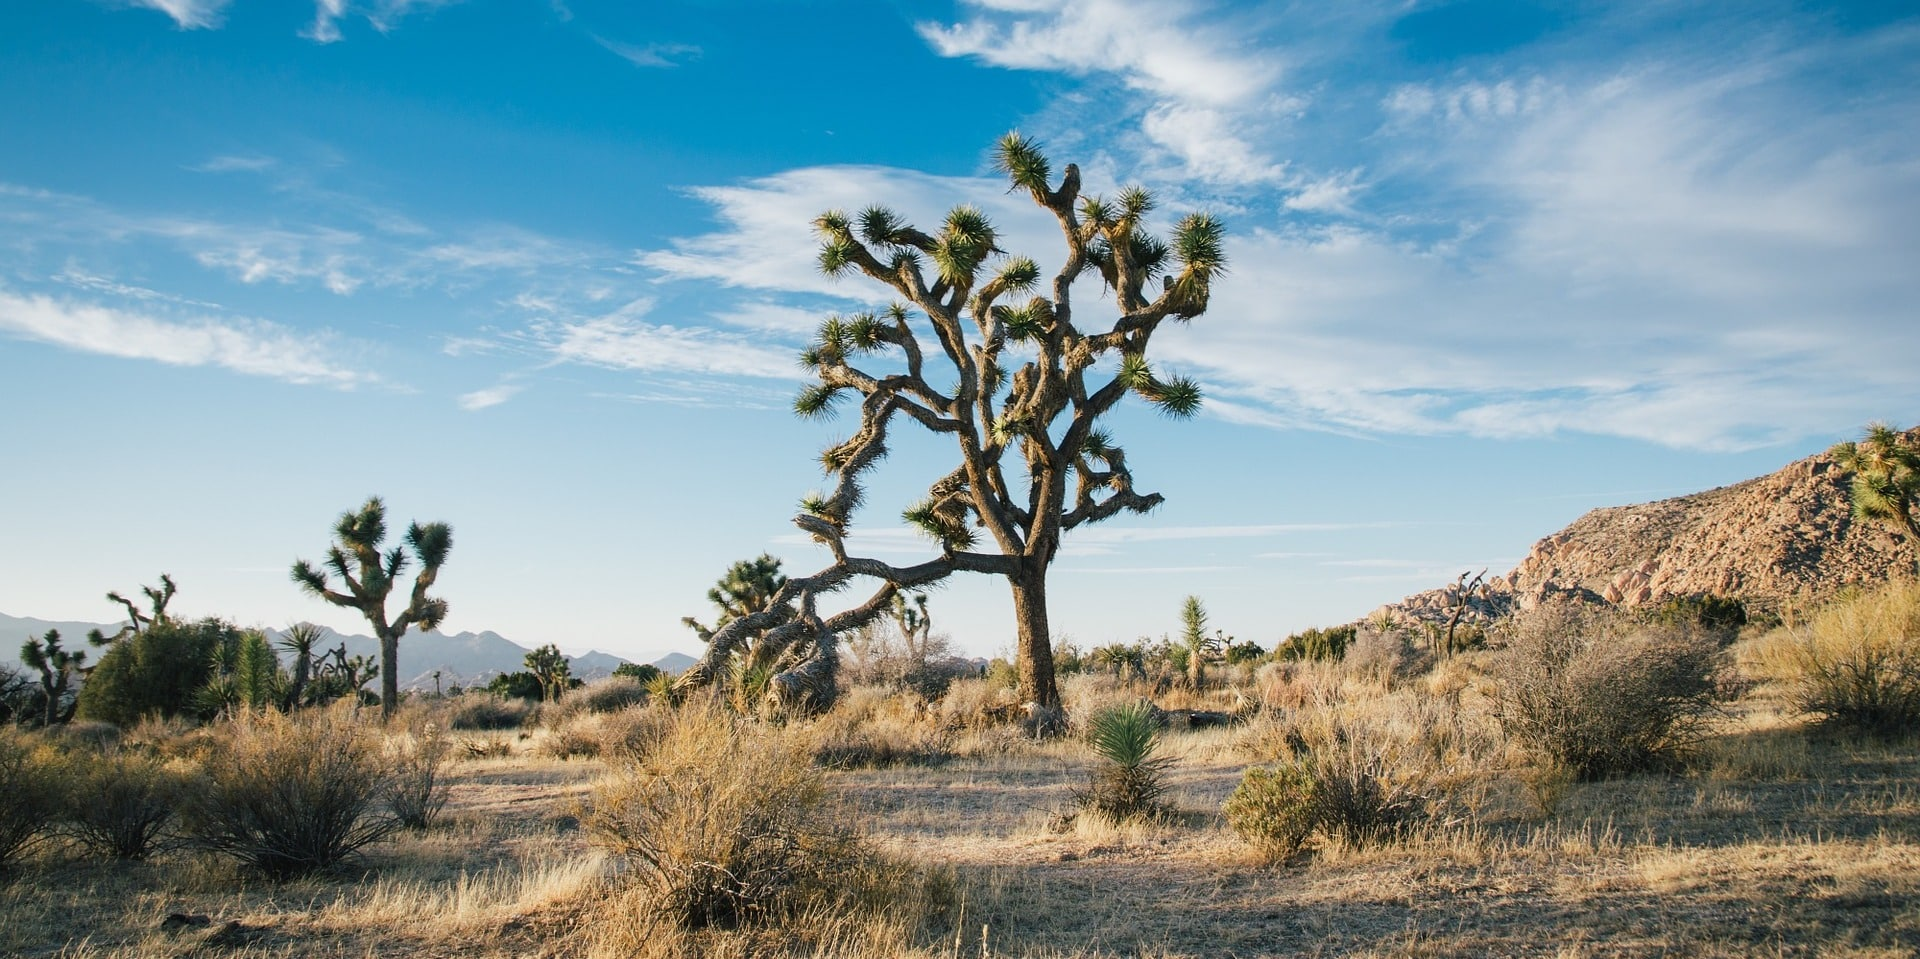 How to Visit Joshua Tree in 2020